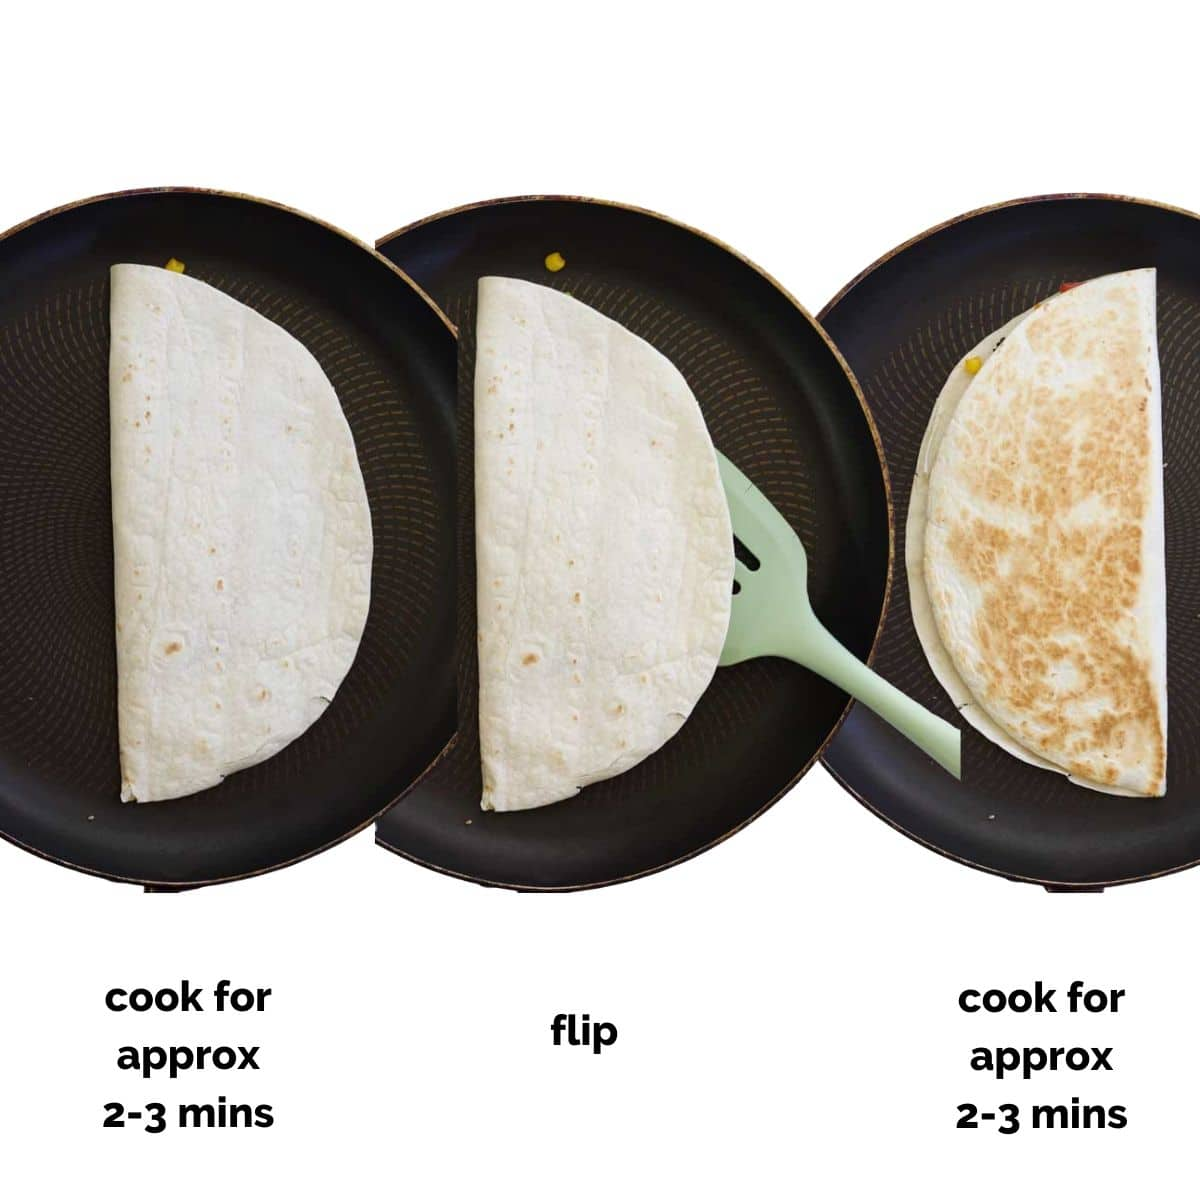 Image Showing 3 Pans (Before, During and After Flipping the Quesadilla)